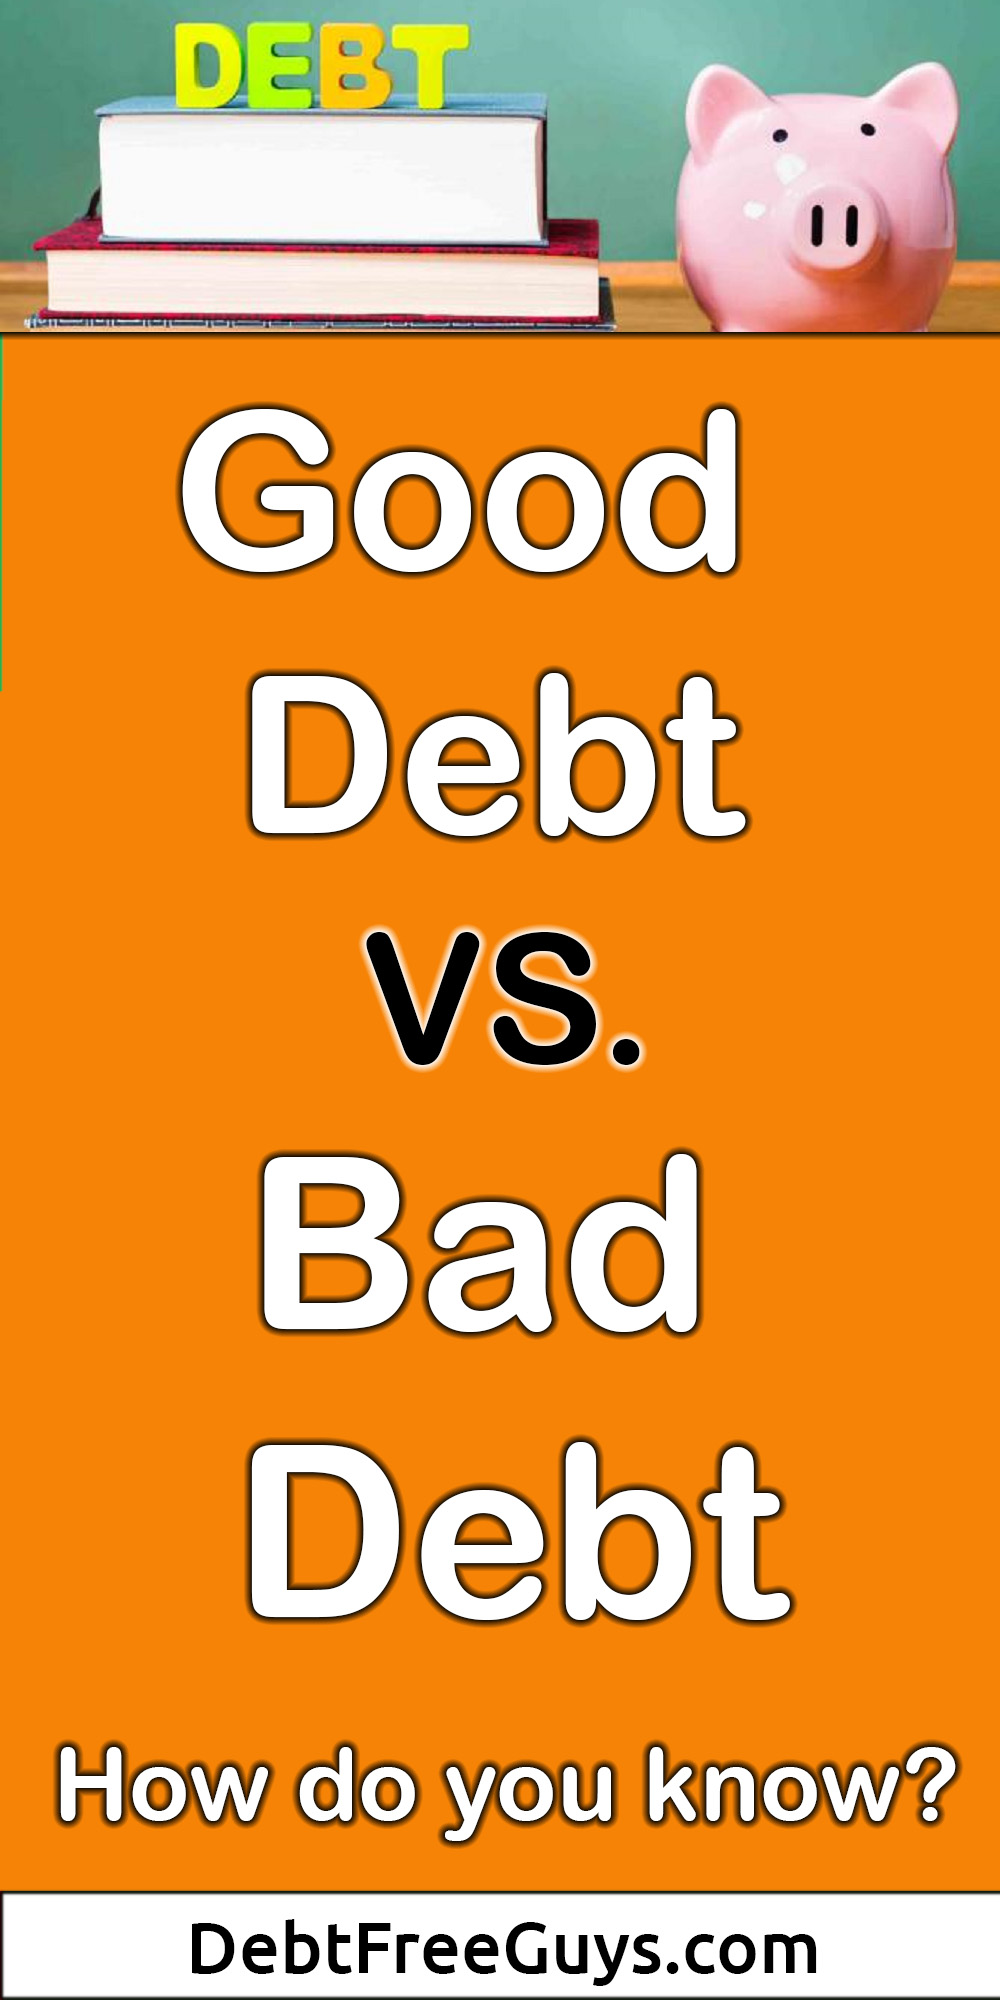 Good debt versus bad debt, how do you know the difference? How can you analyze one versus the other? Here's some great help so you can make a better decision.